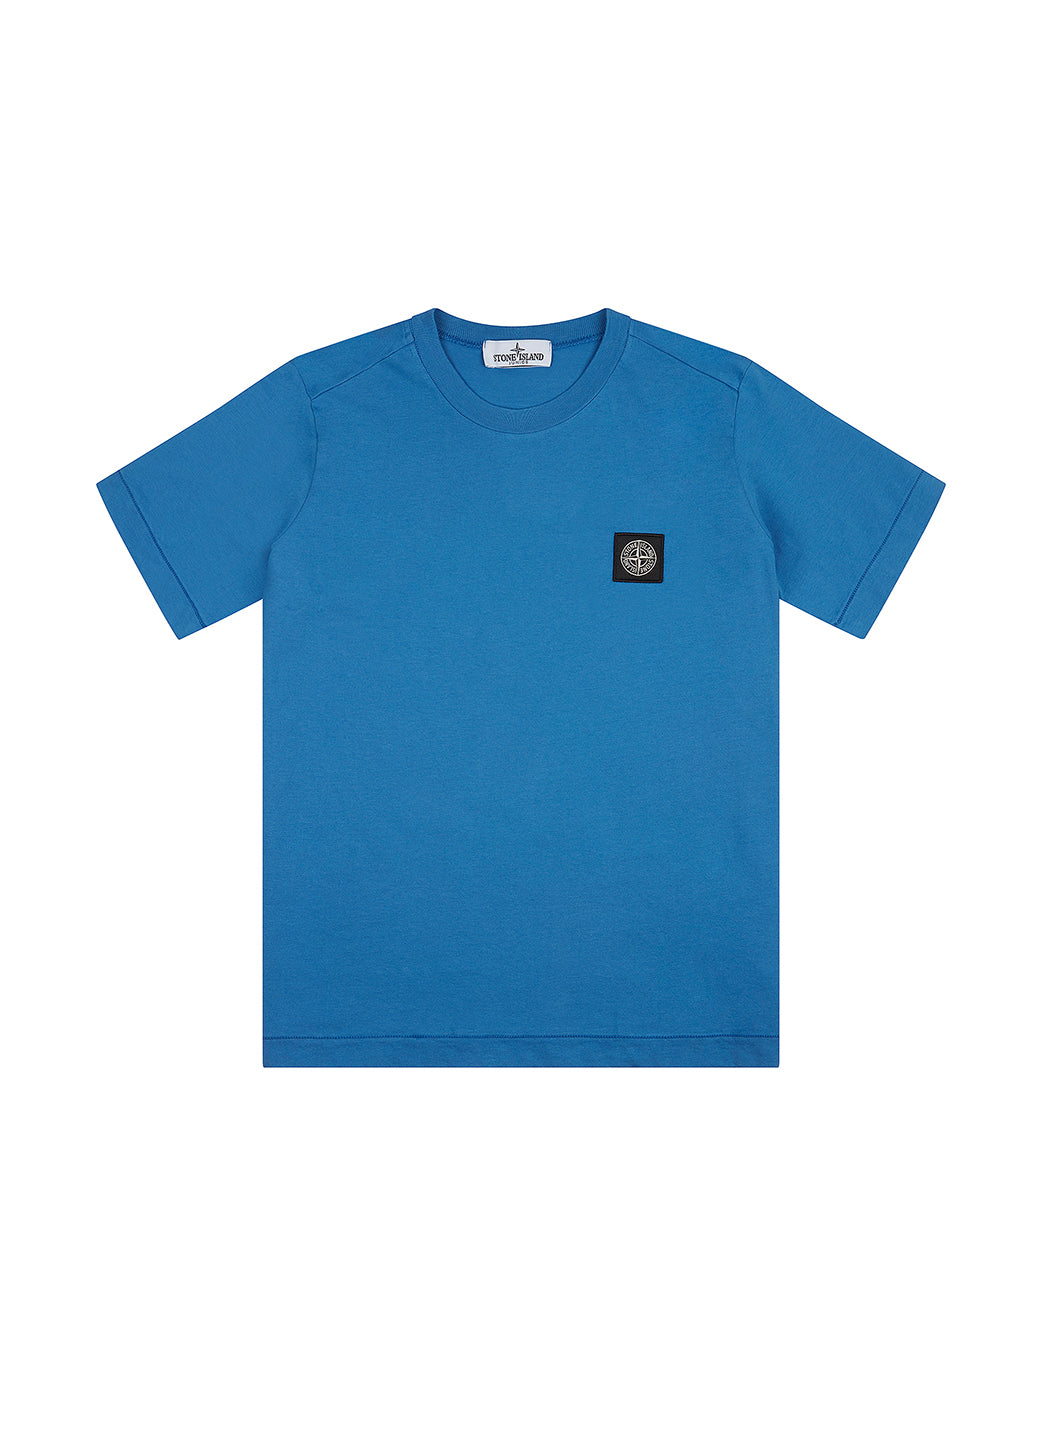 20147 T-Shirt in Periwinkle